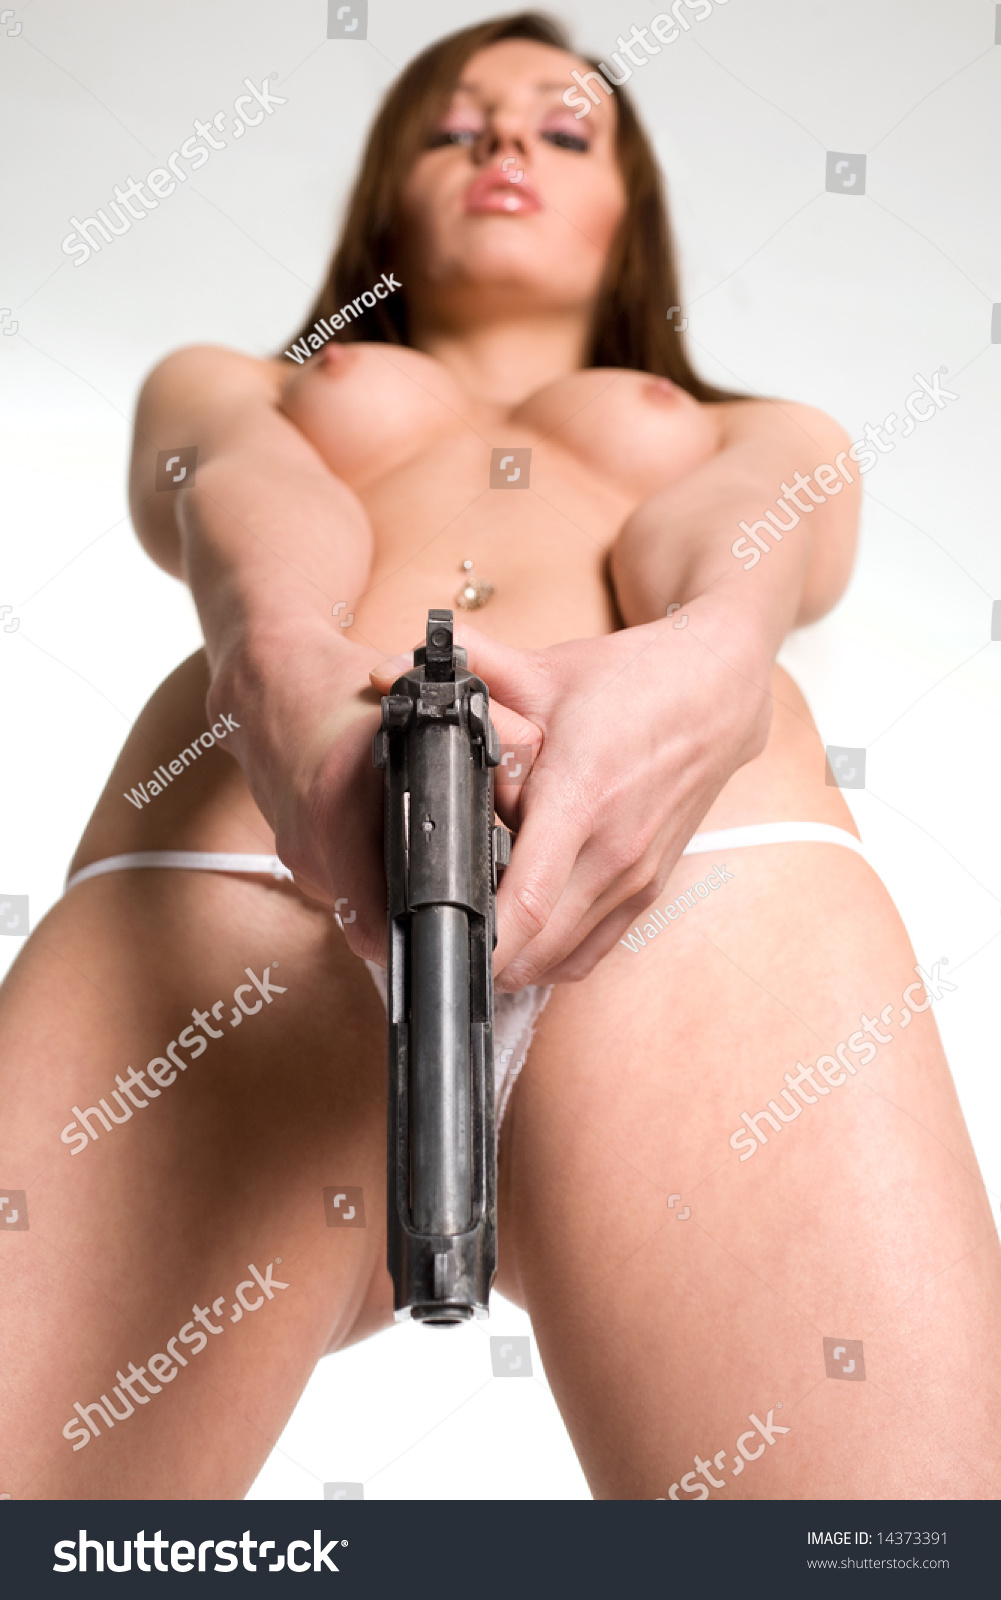 Women and guns nude